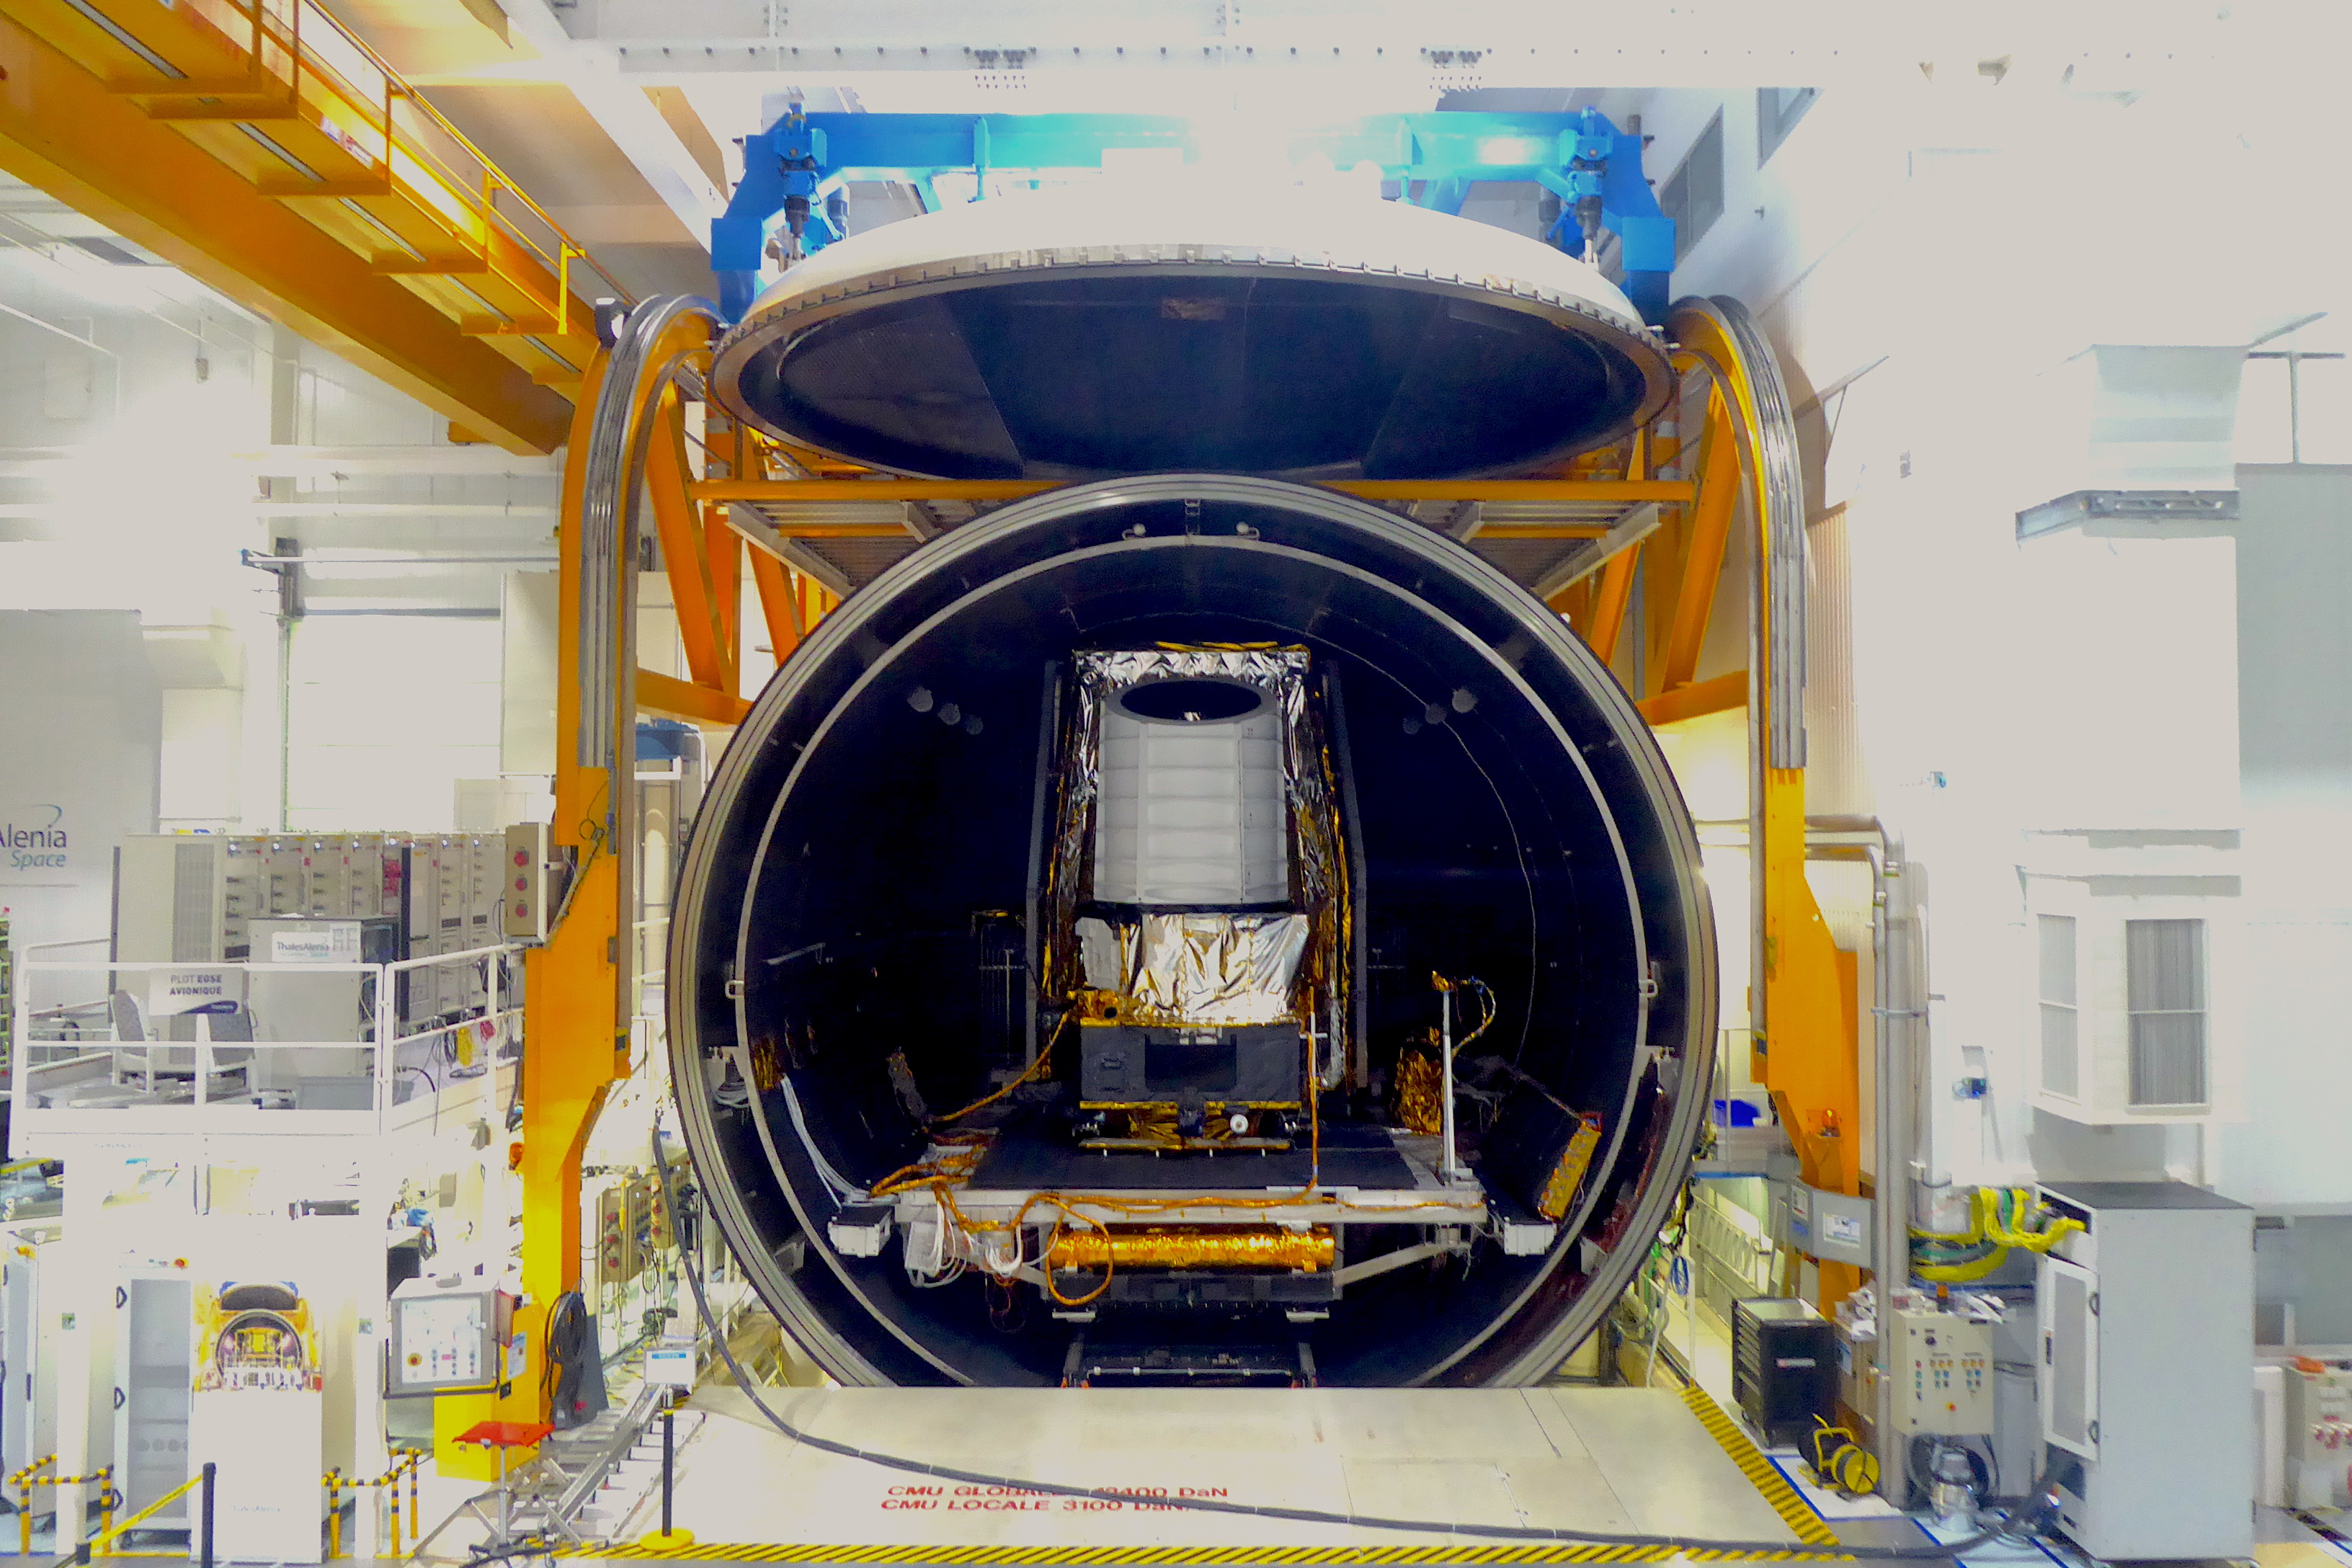 Euclid_STM_in_thermal-vacuum_chamber_Aug2019_2.jpg